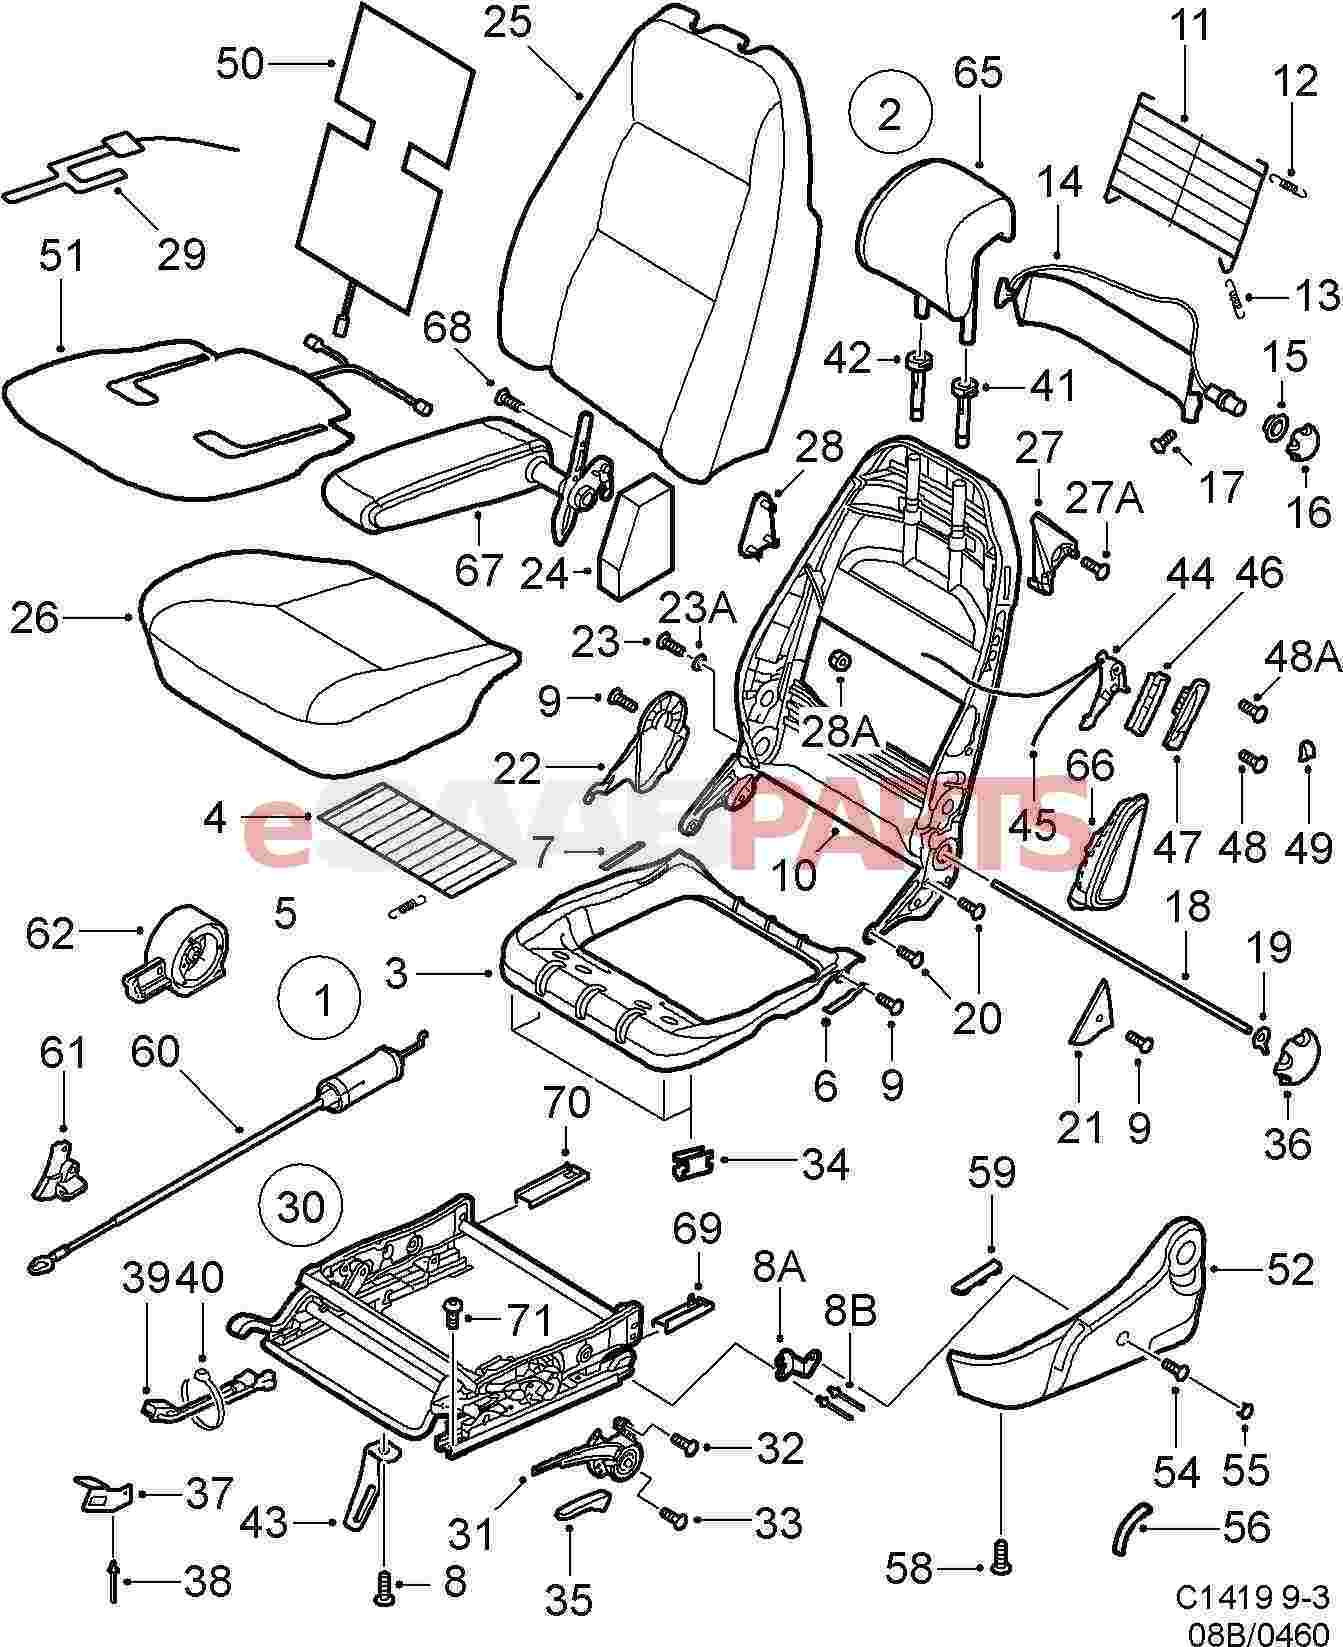 Diagrams Wiring : E36 Convertible Top Wiring Diagram